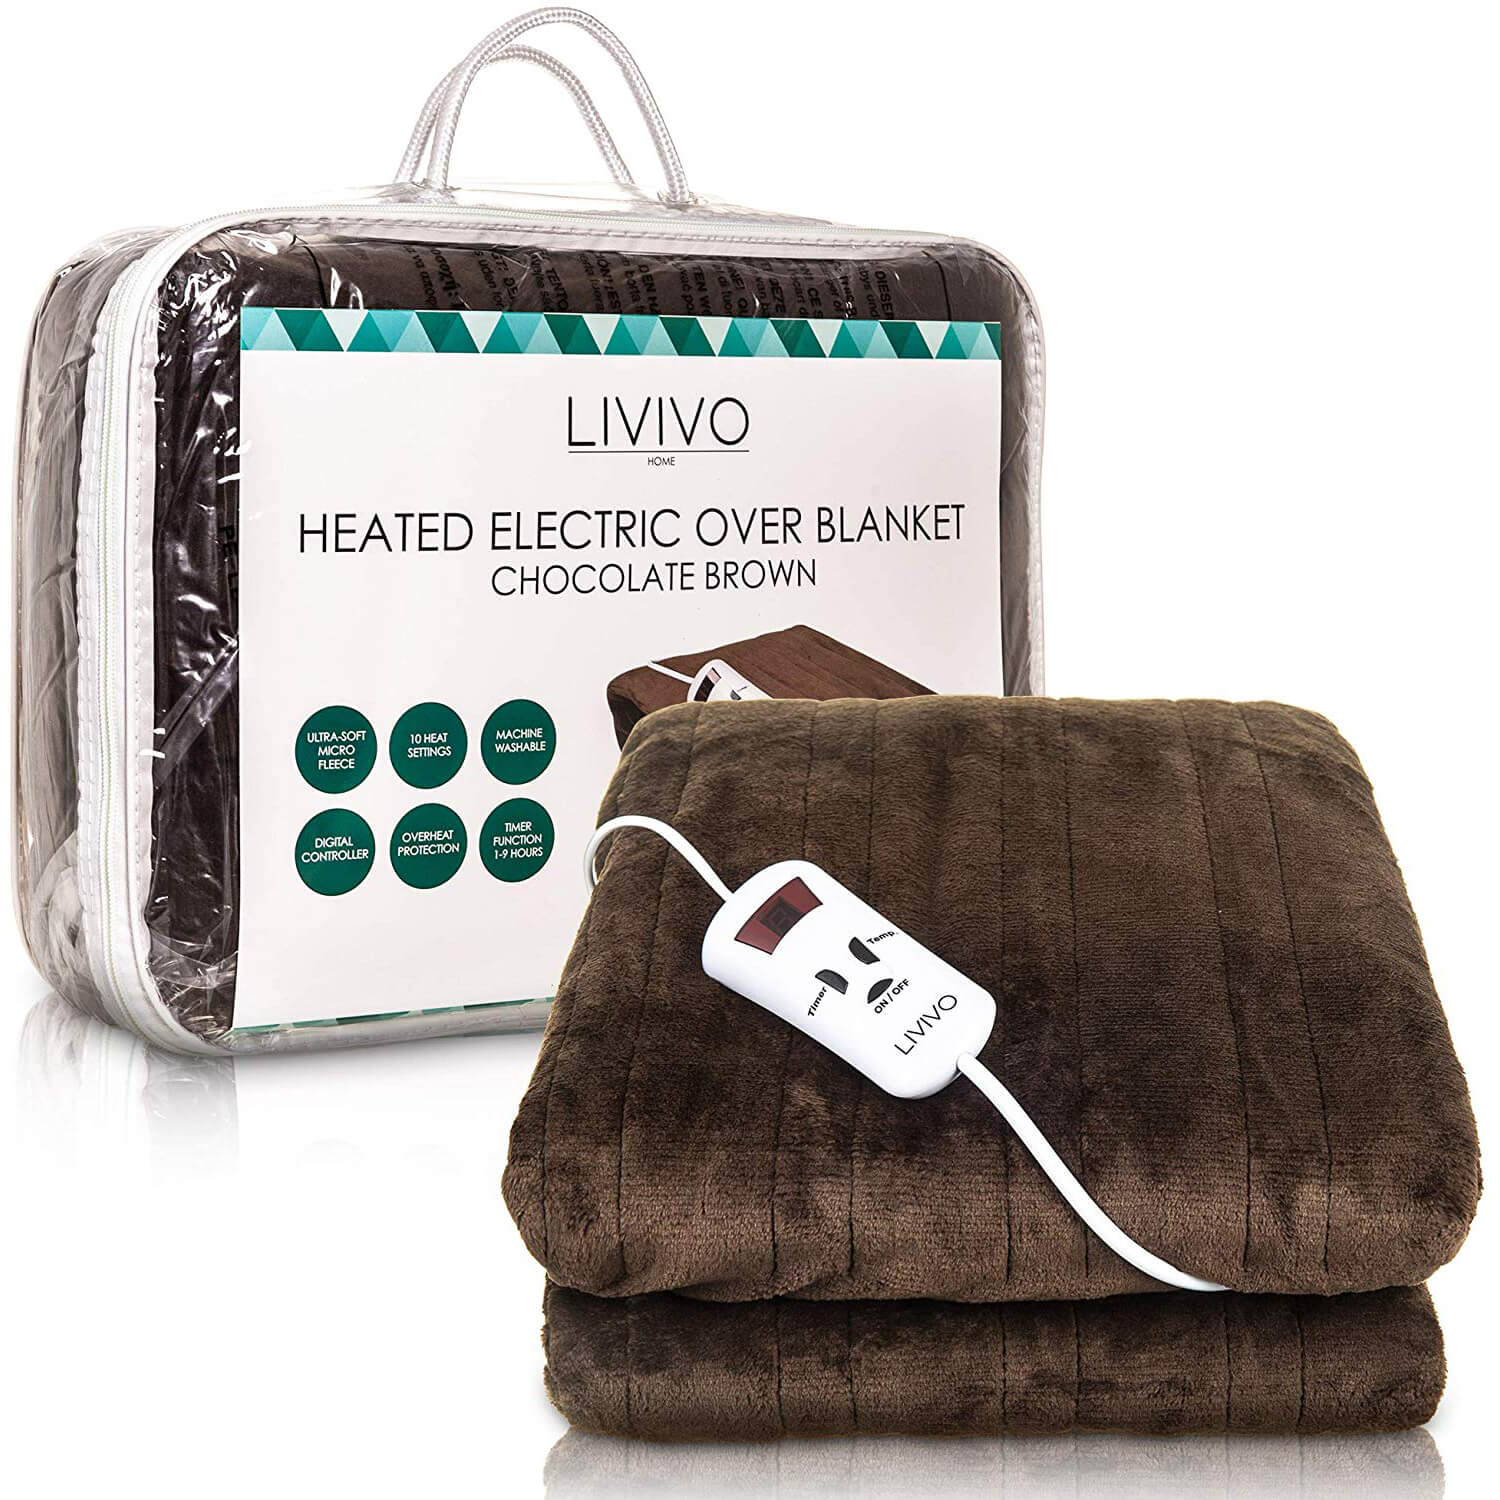 LIVIVO Heated Electric Over Blanket